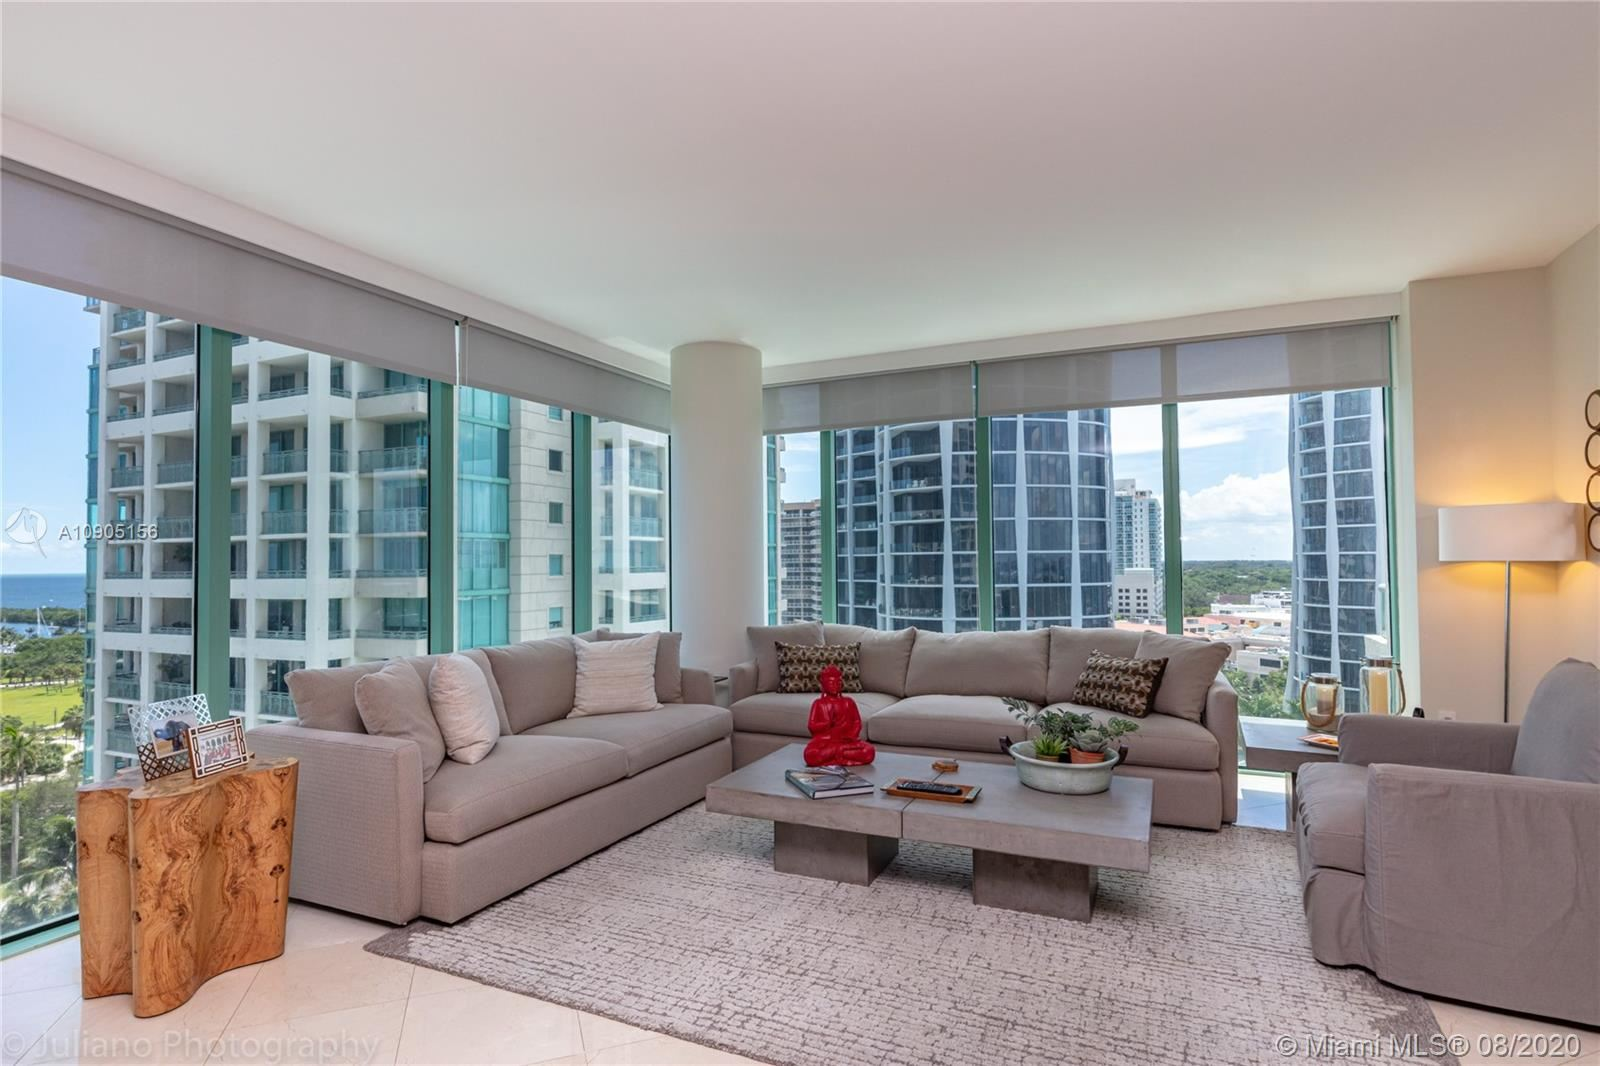 3350 SW 27th Ave #1102, Coconut Grove, FL 33133 - #: A10905156